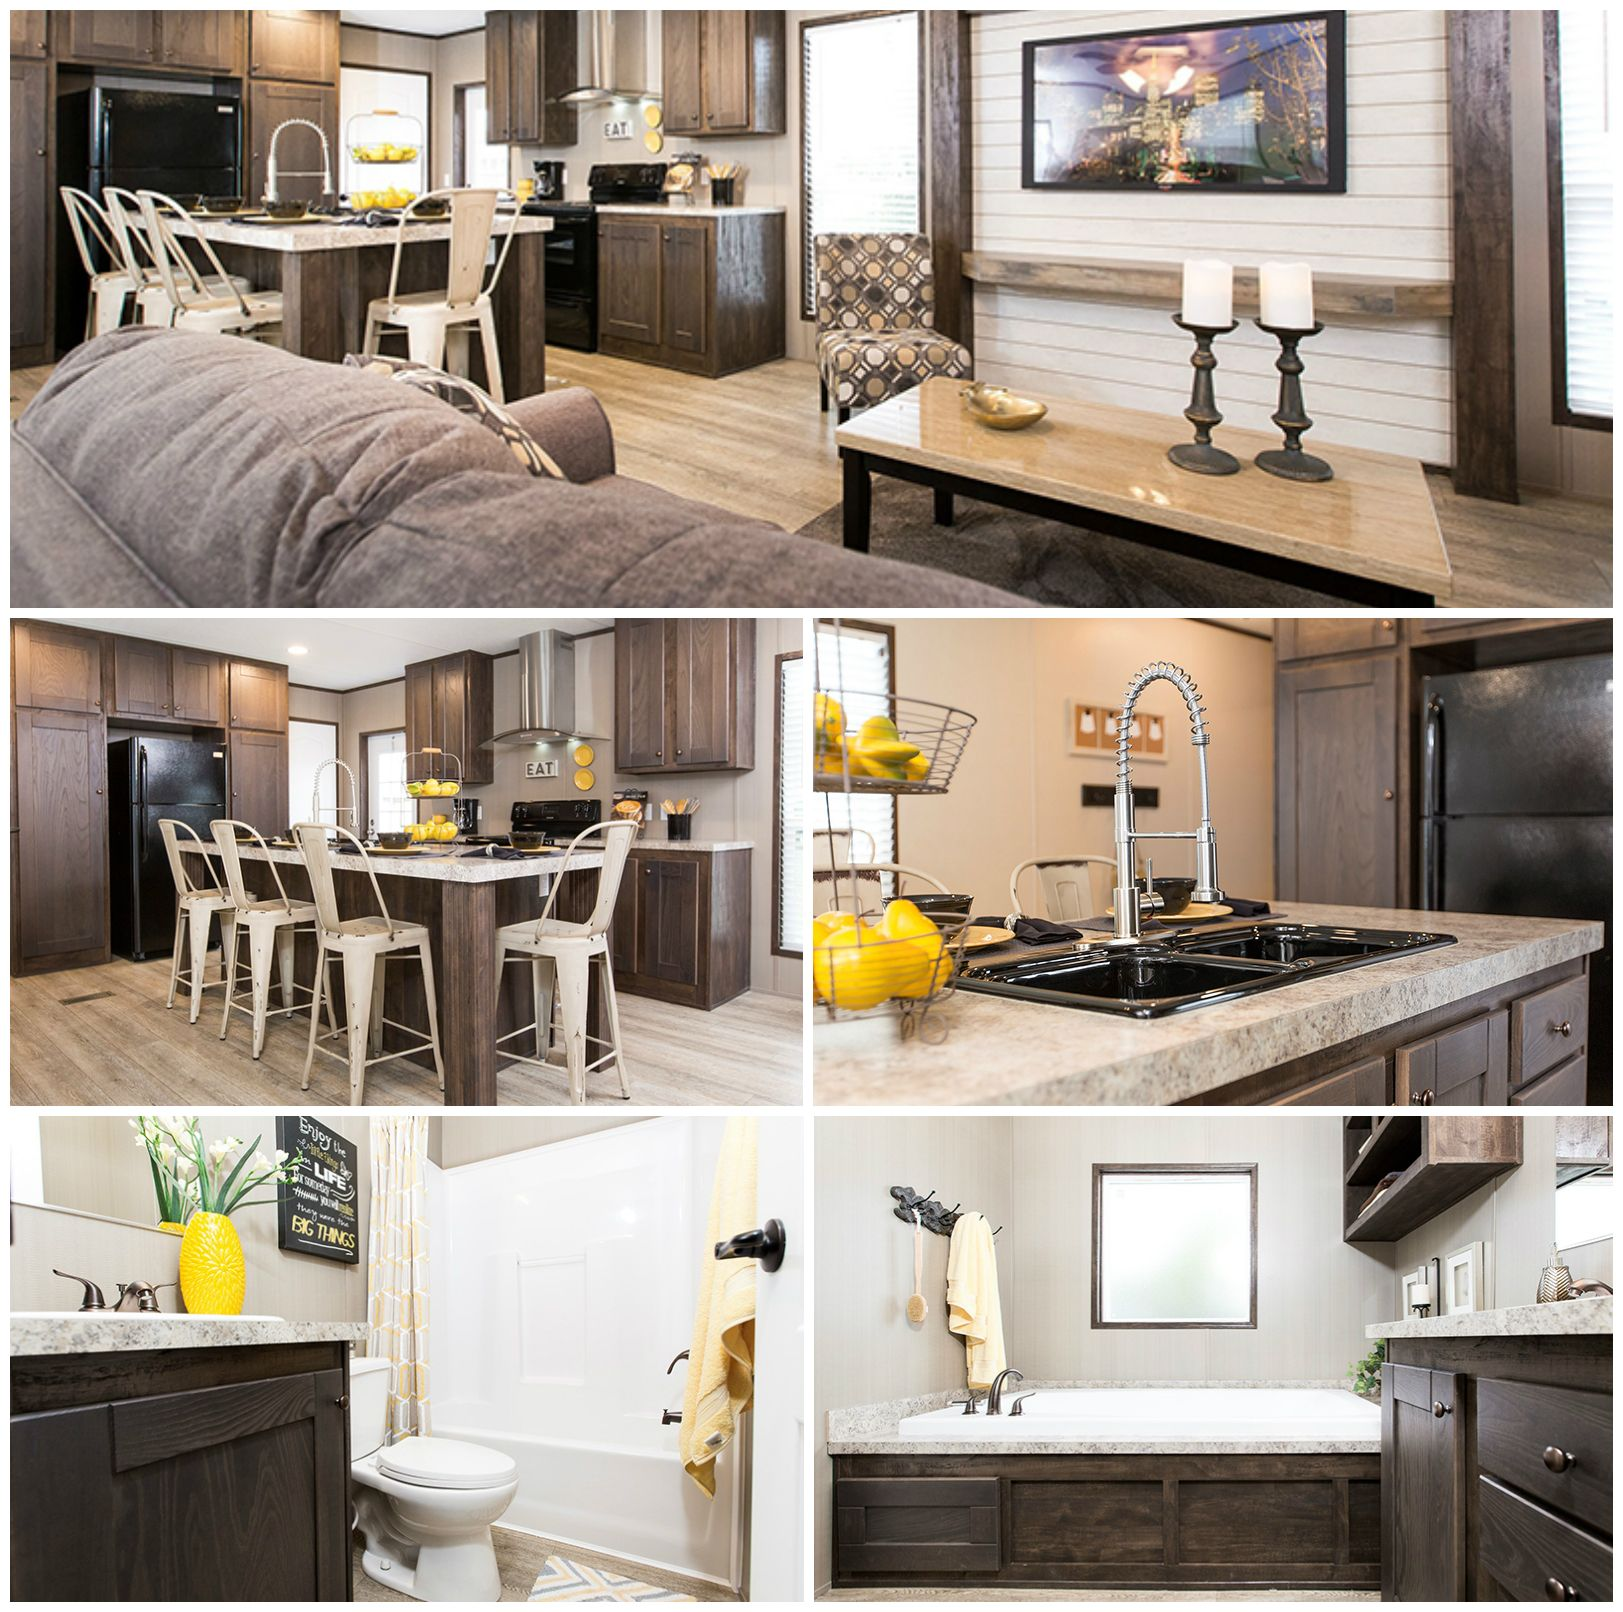 Starting At 36 849 The 3 Bedroom 2 Bath Resolution Has All The Features You Need At A Price That Can T Be Beaten You Really Home Modular Homes Living Spaces